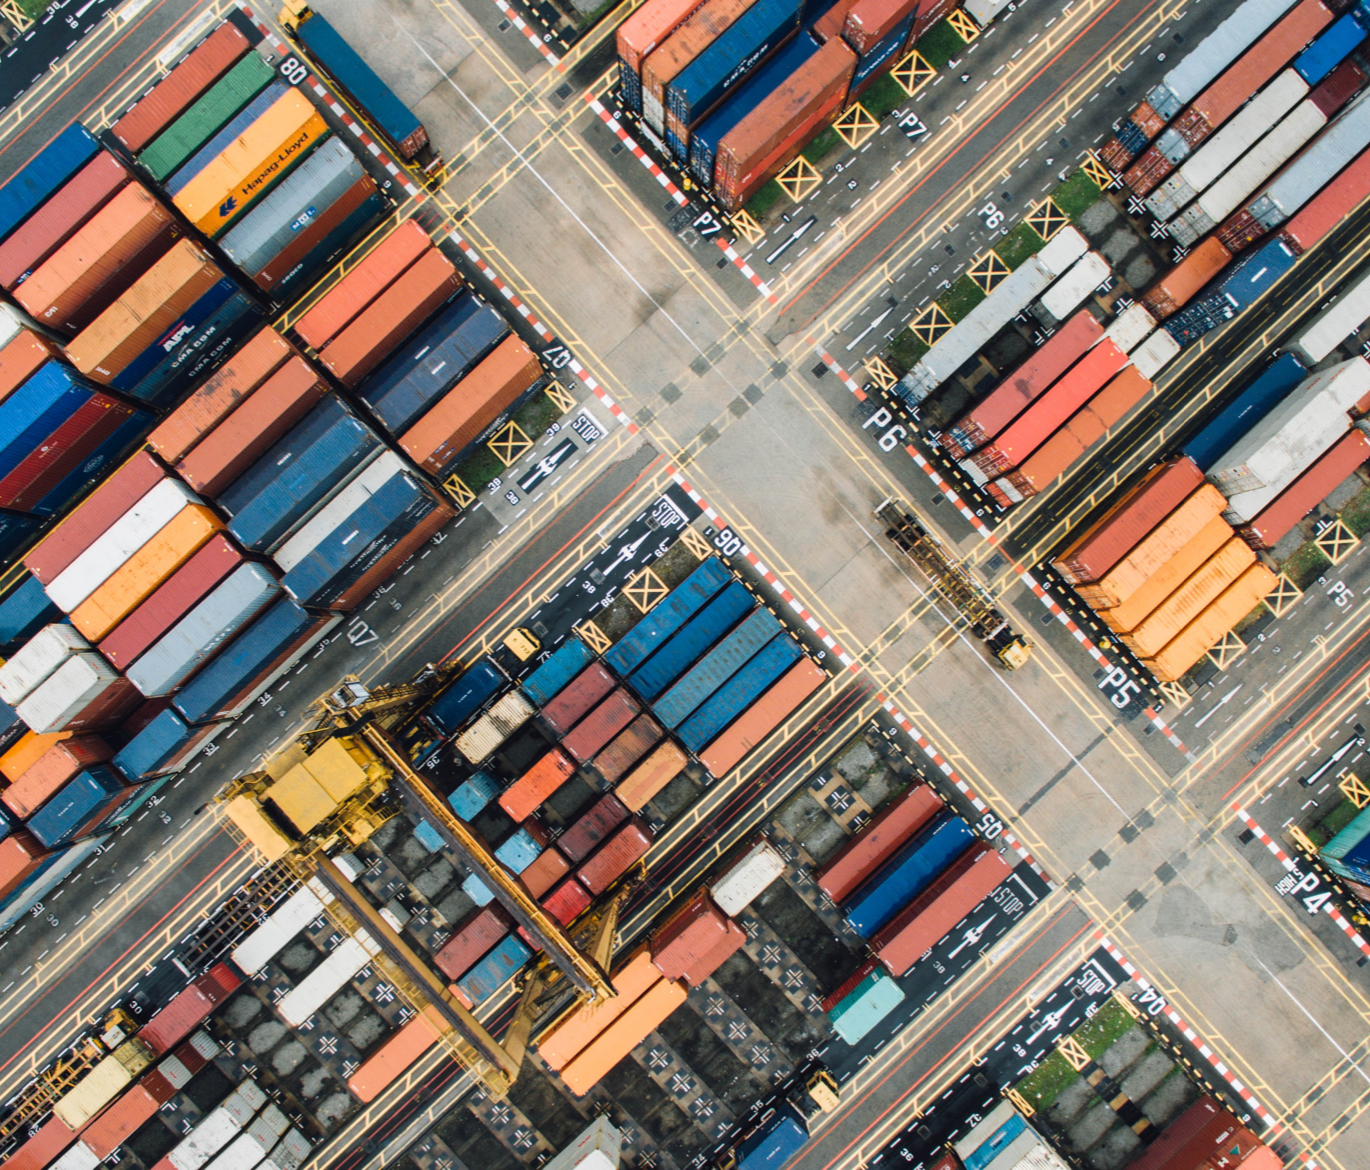 ARE YOU A SUPPLIER?PARTNER WITH US! - If you'd like to be part of our Entourage as a General Contractors, Architects, Developers, and Container yards click here. Learn more about benefits of becoming our affiliate!